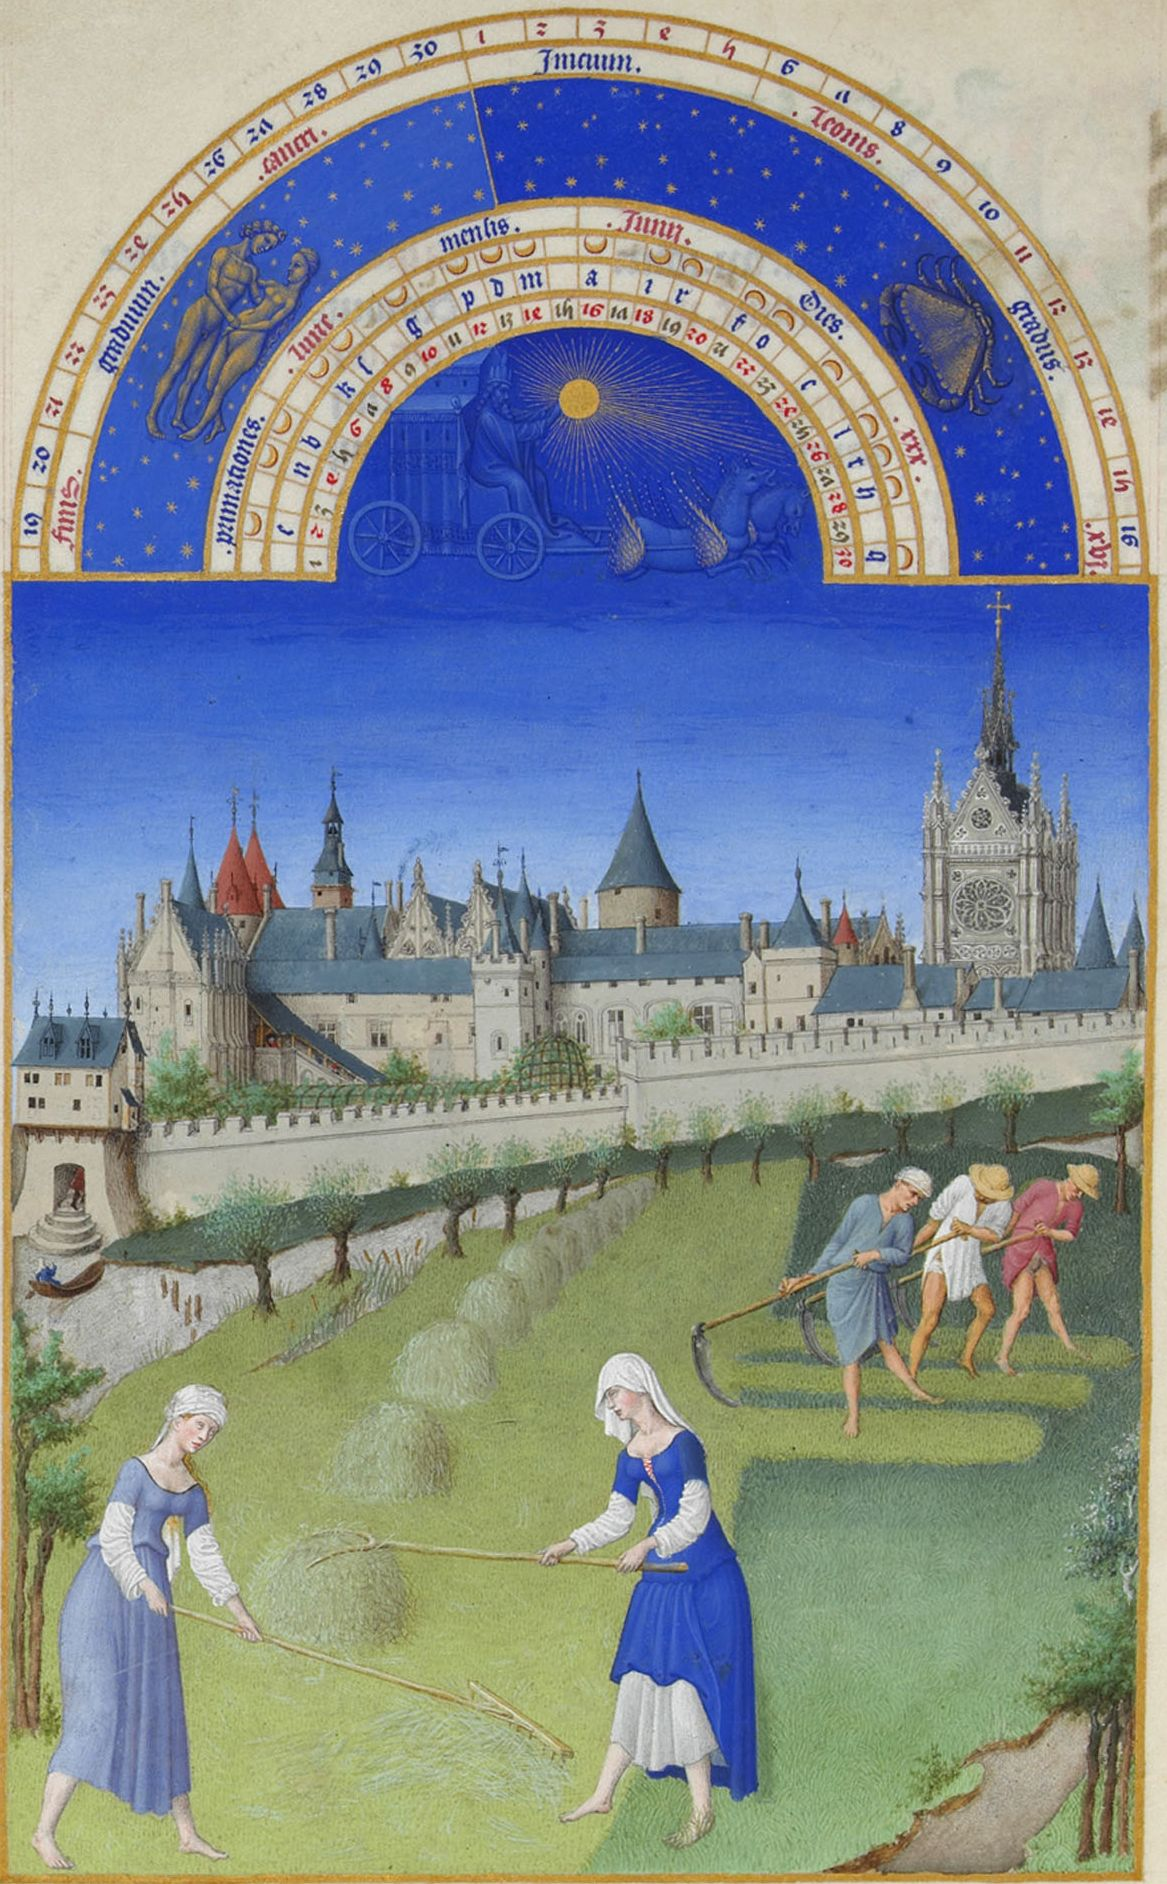 """Limbourg Brothers, """"The Book of Hours."""" Haymaking. Place - Paris, Zhyuif meadow on the island, close to the Cité."""